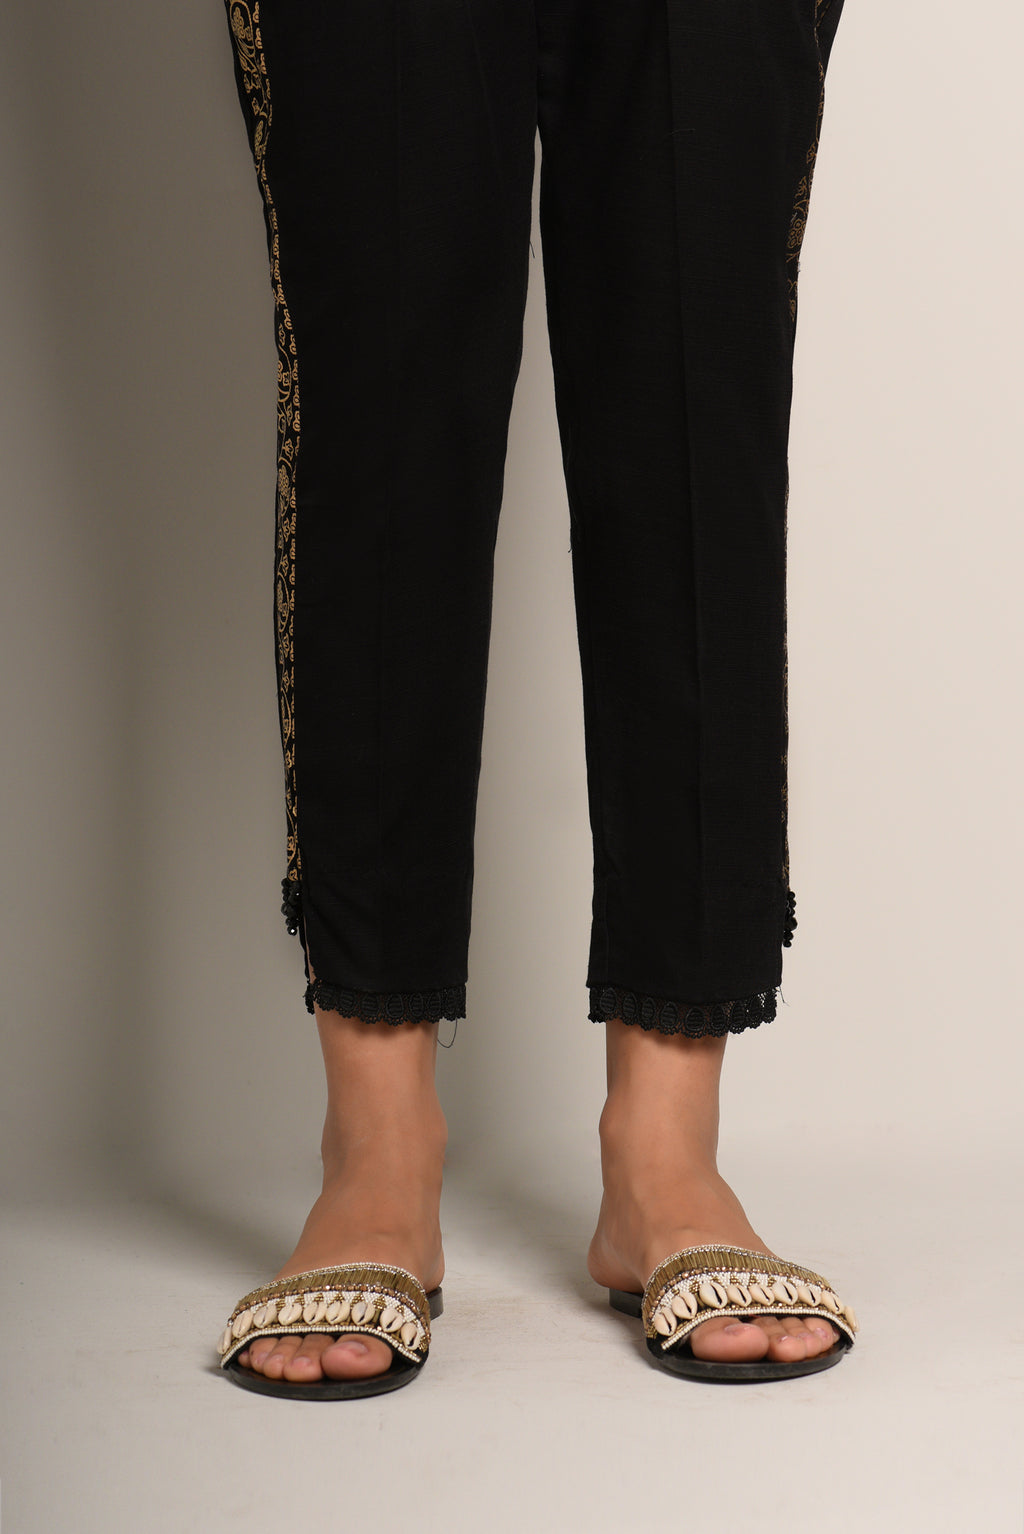 Trouser - Ethnic by Outfitters